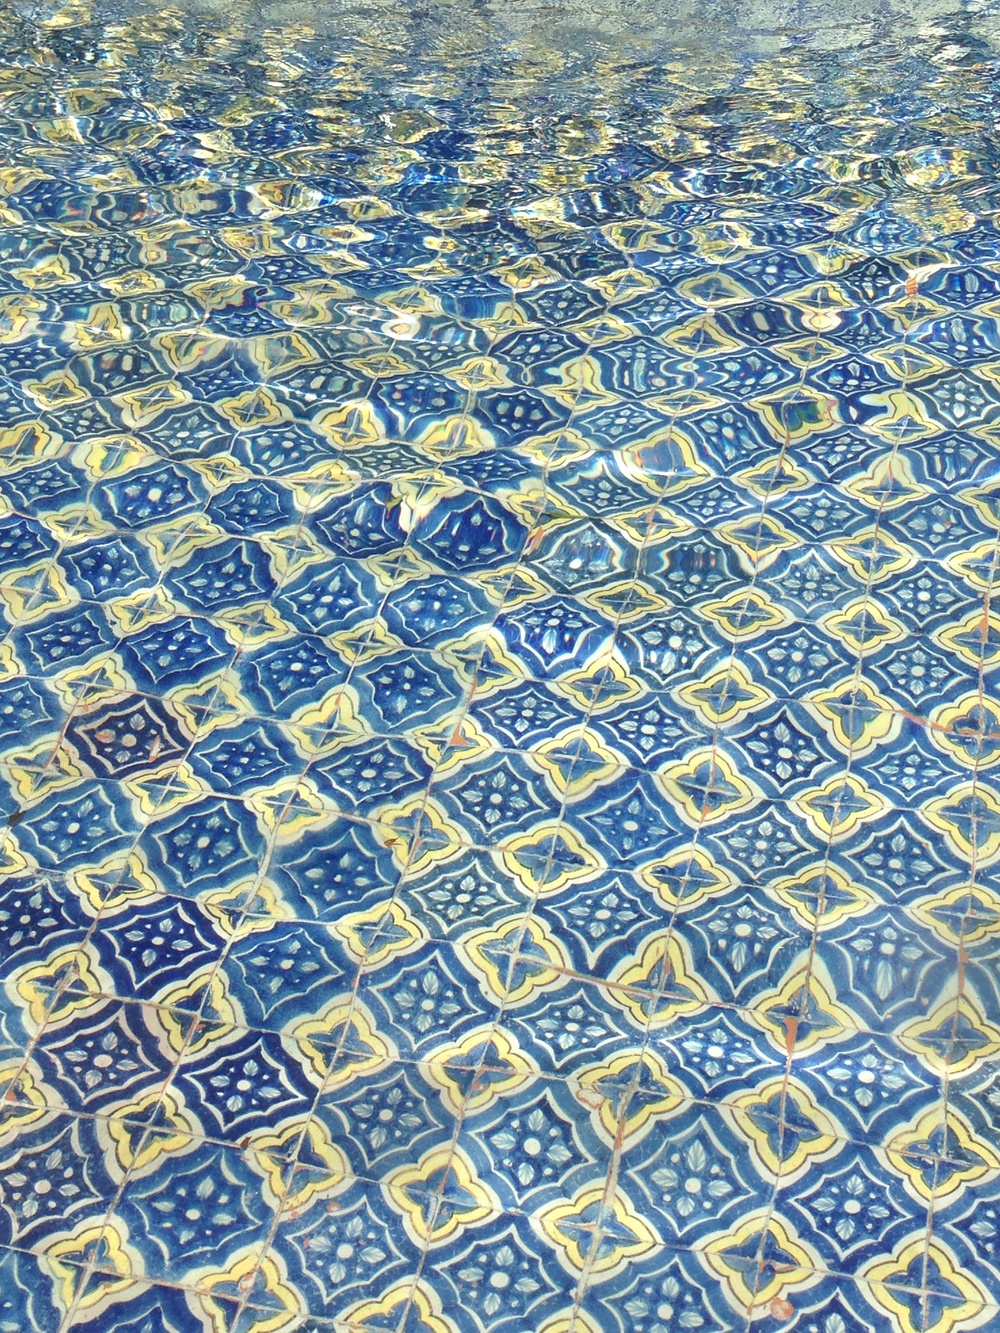 Beautiful Spanish tile accent in a fountain.